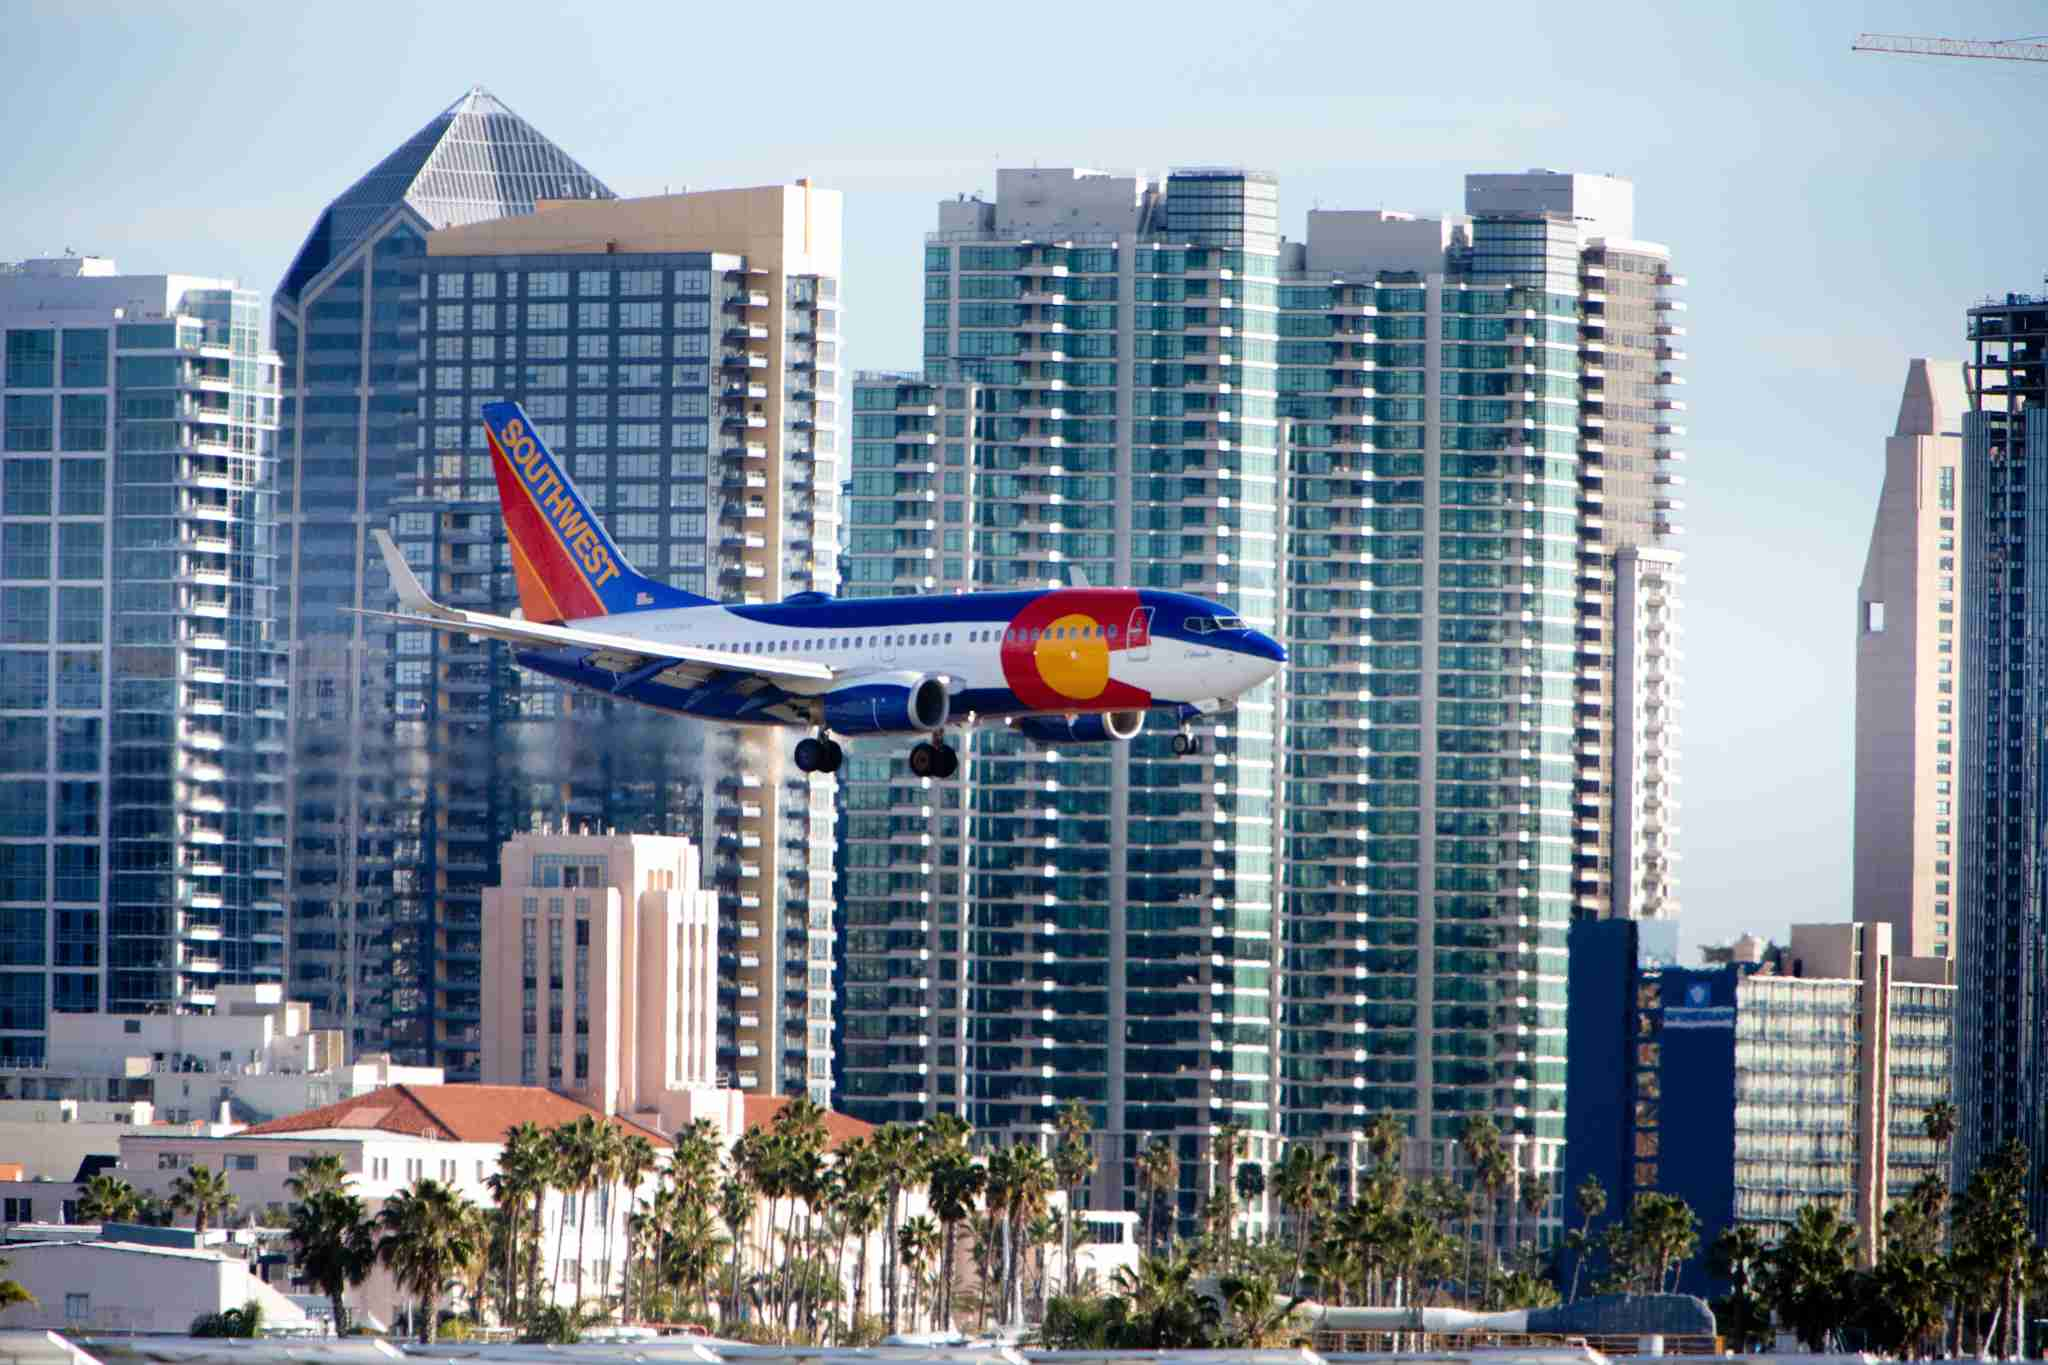 (GERMANY OUT) A Boeing 737 of Southwest Airlines approaching Lindbergh Field, with high rises of the San Diego skyline in the background. (Photo by Dünzl/ullstein bild via Getty Images)